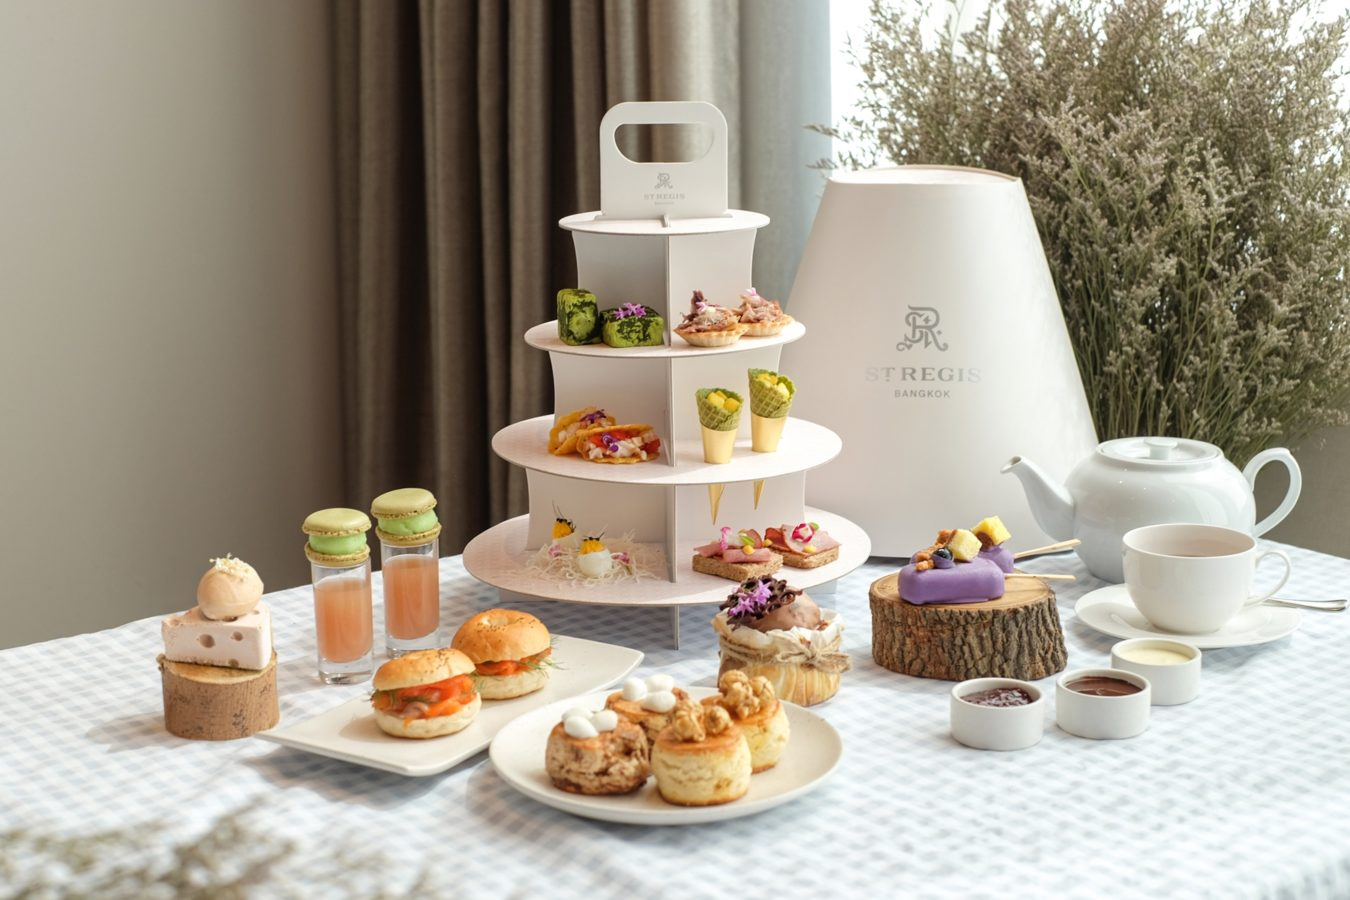 5 Bangkok High Tea Delivery Services for a Fine Afternoon at Home